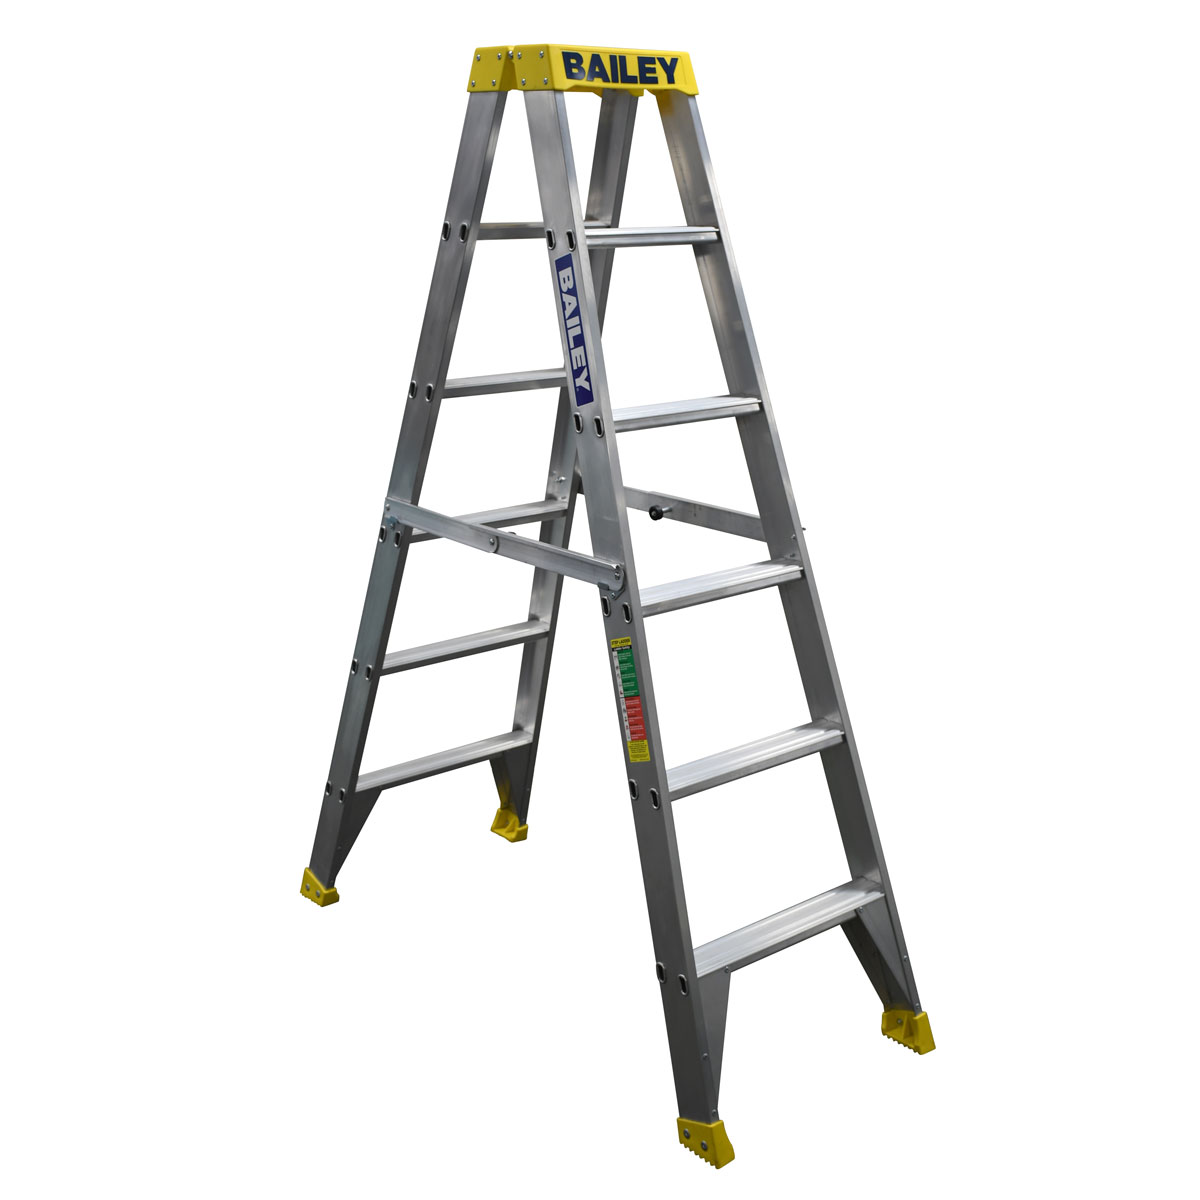 Ladder - Double Sided Aluminium Bailey Pro Industrial Punchlock 150kg 6-Step 1.8M